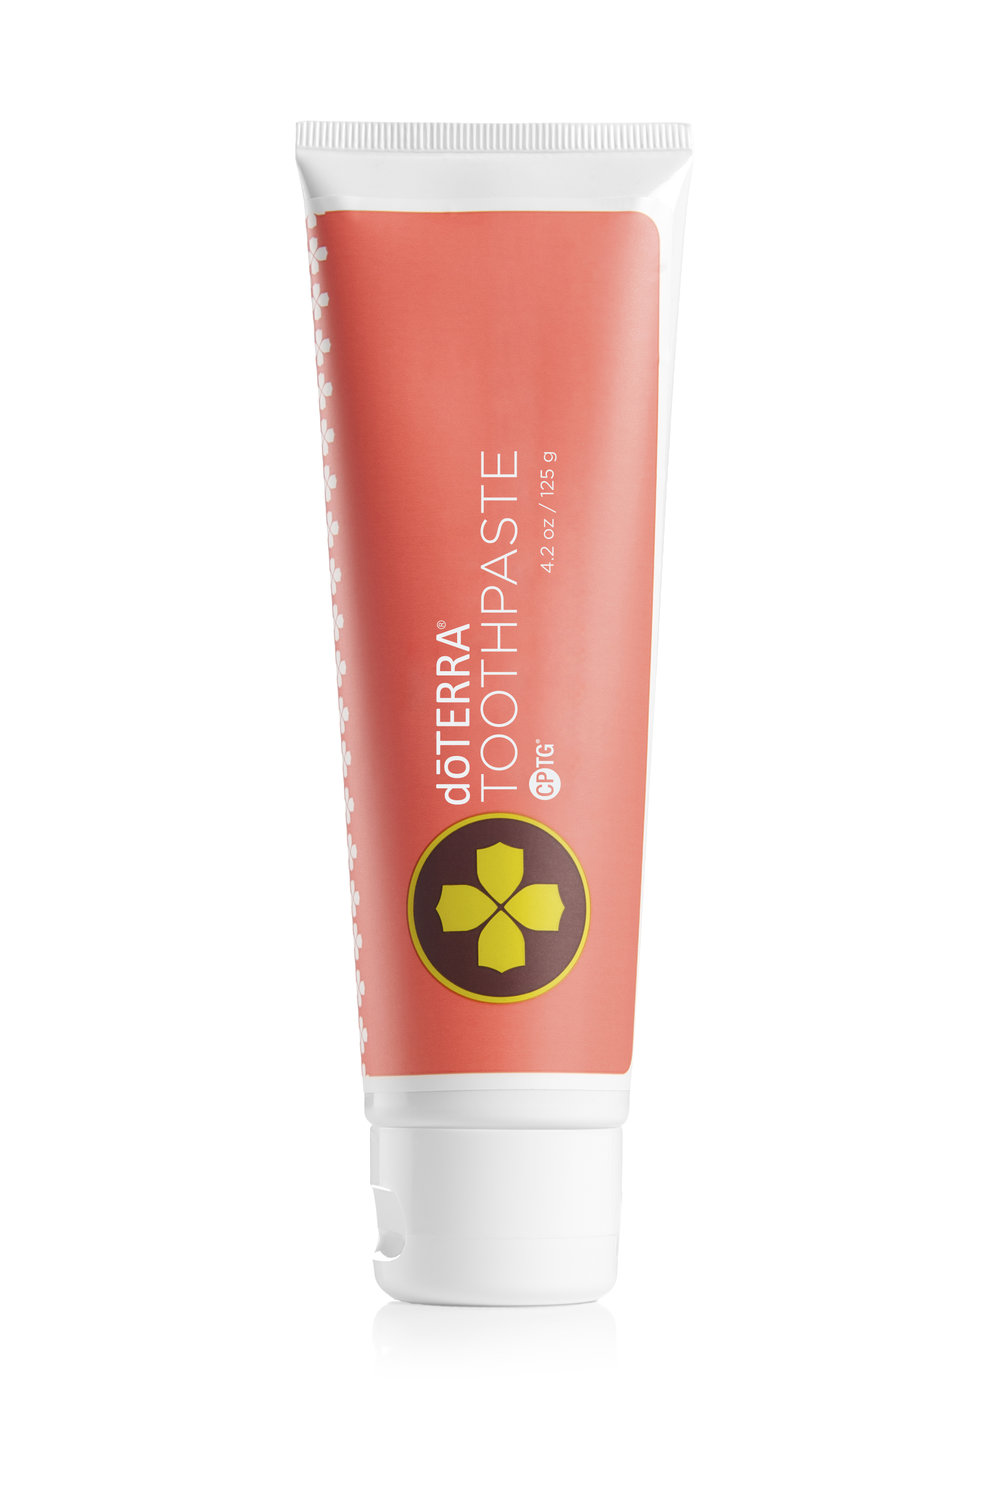 doterra-on-guard-toothpaste.jpg